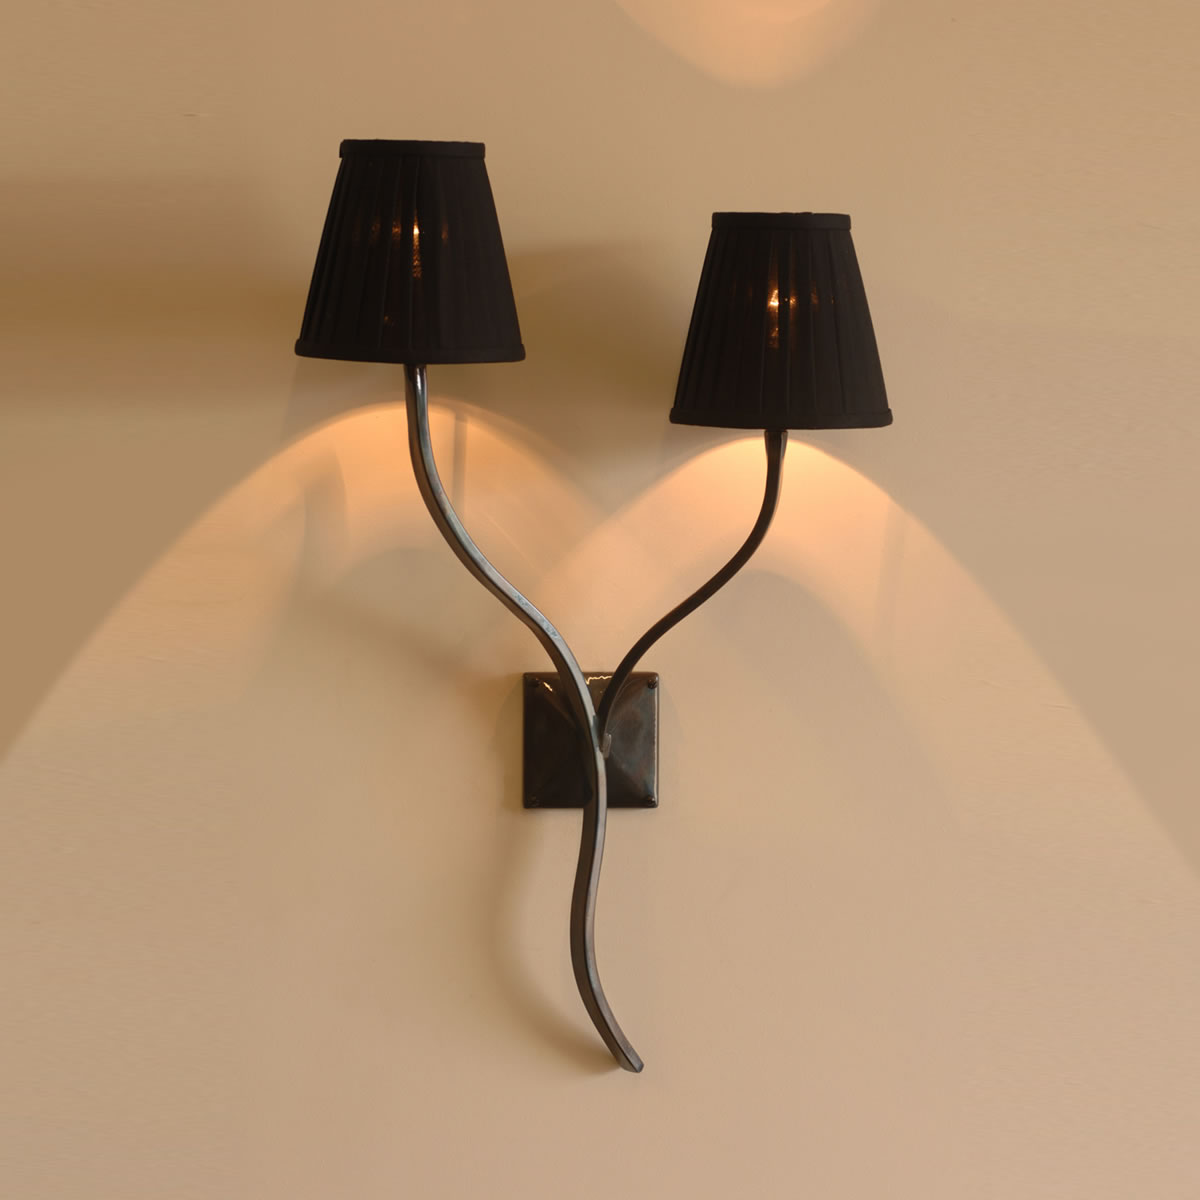 The Ailsworth Twin Candle Wrought Iron Wall Light